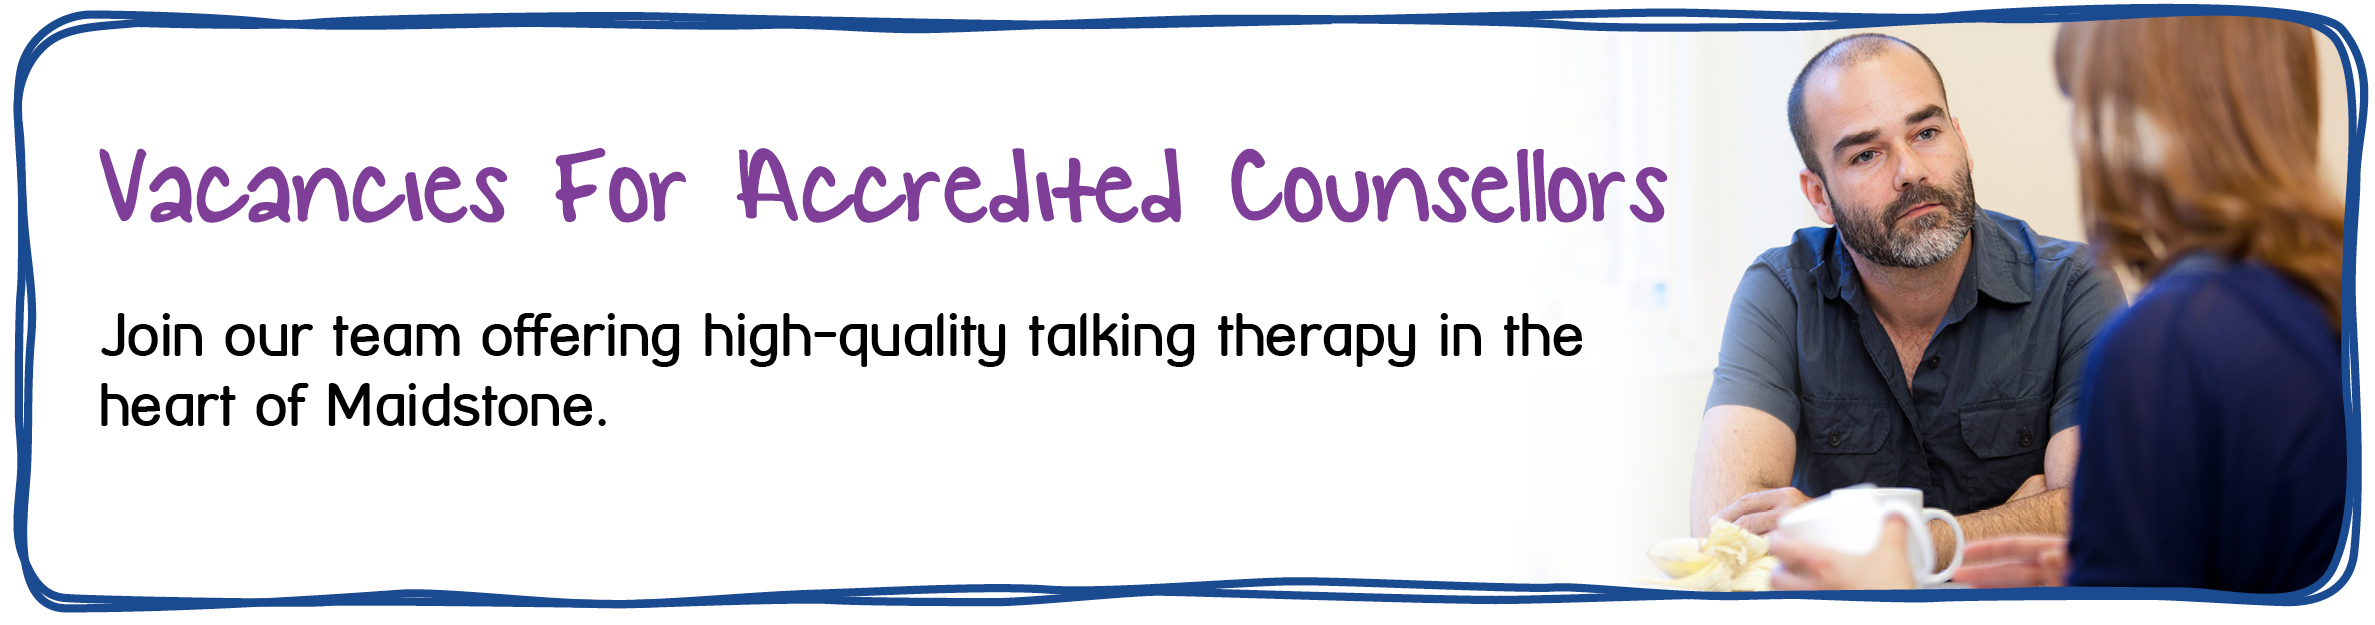 Vacancies for Accredited Counsellors In Maidstone. Join our team offering high-quality talking therapy in the heart of Maidstone.